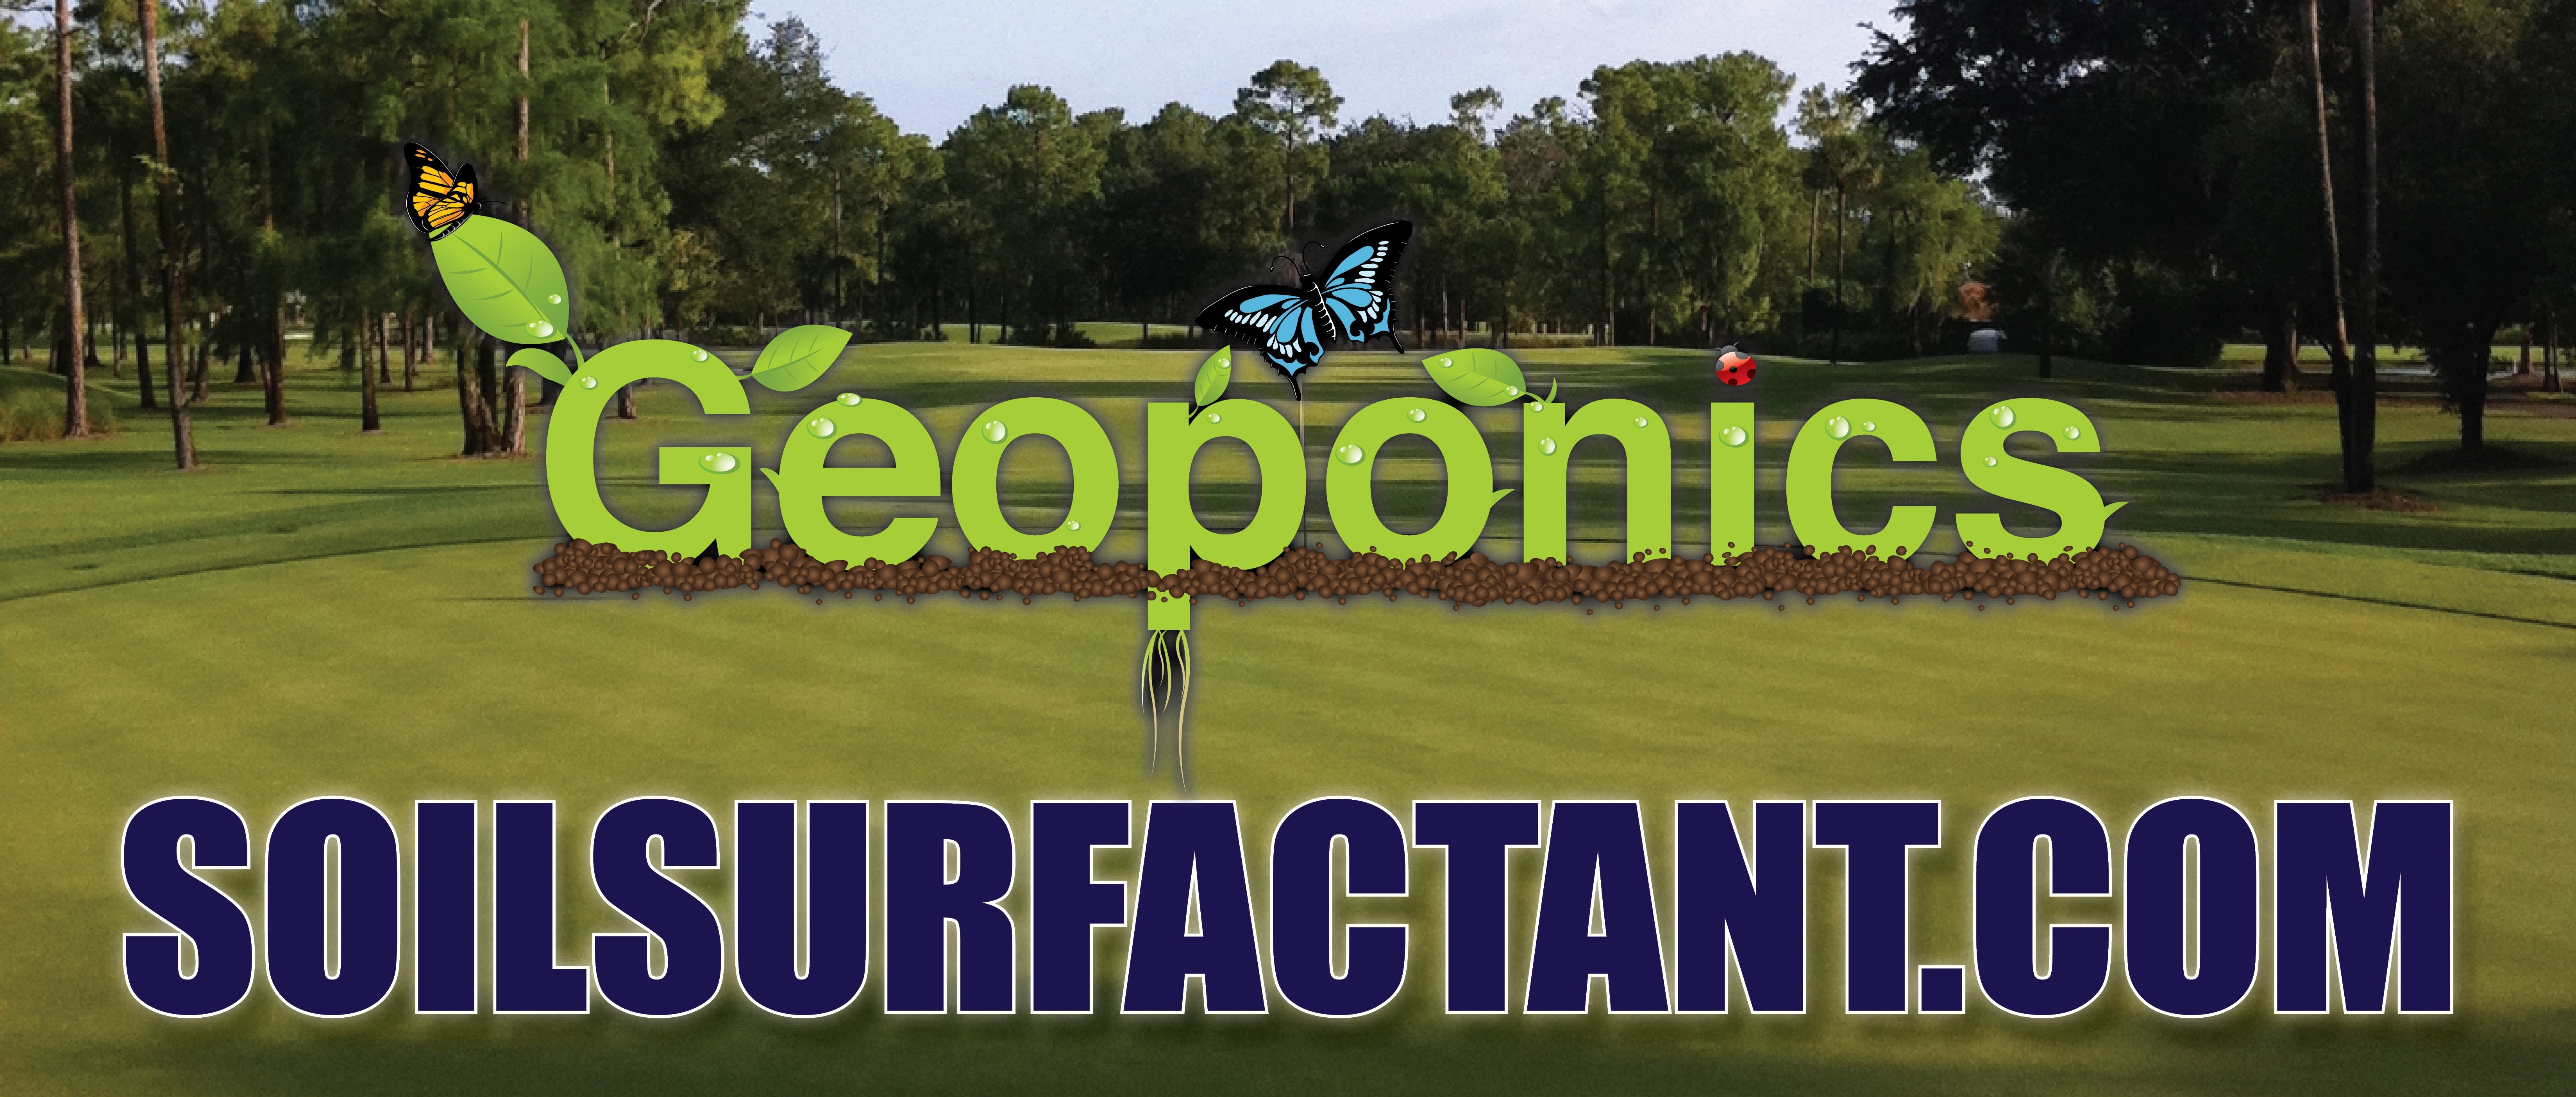 SoilSurfactant.com is home to the best soil surfactants on the market today. Brands like Penterra, HydraHawk, Profasorb Humawet